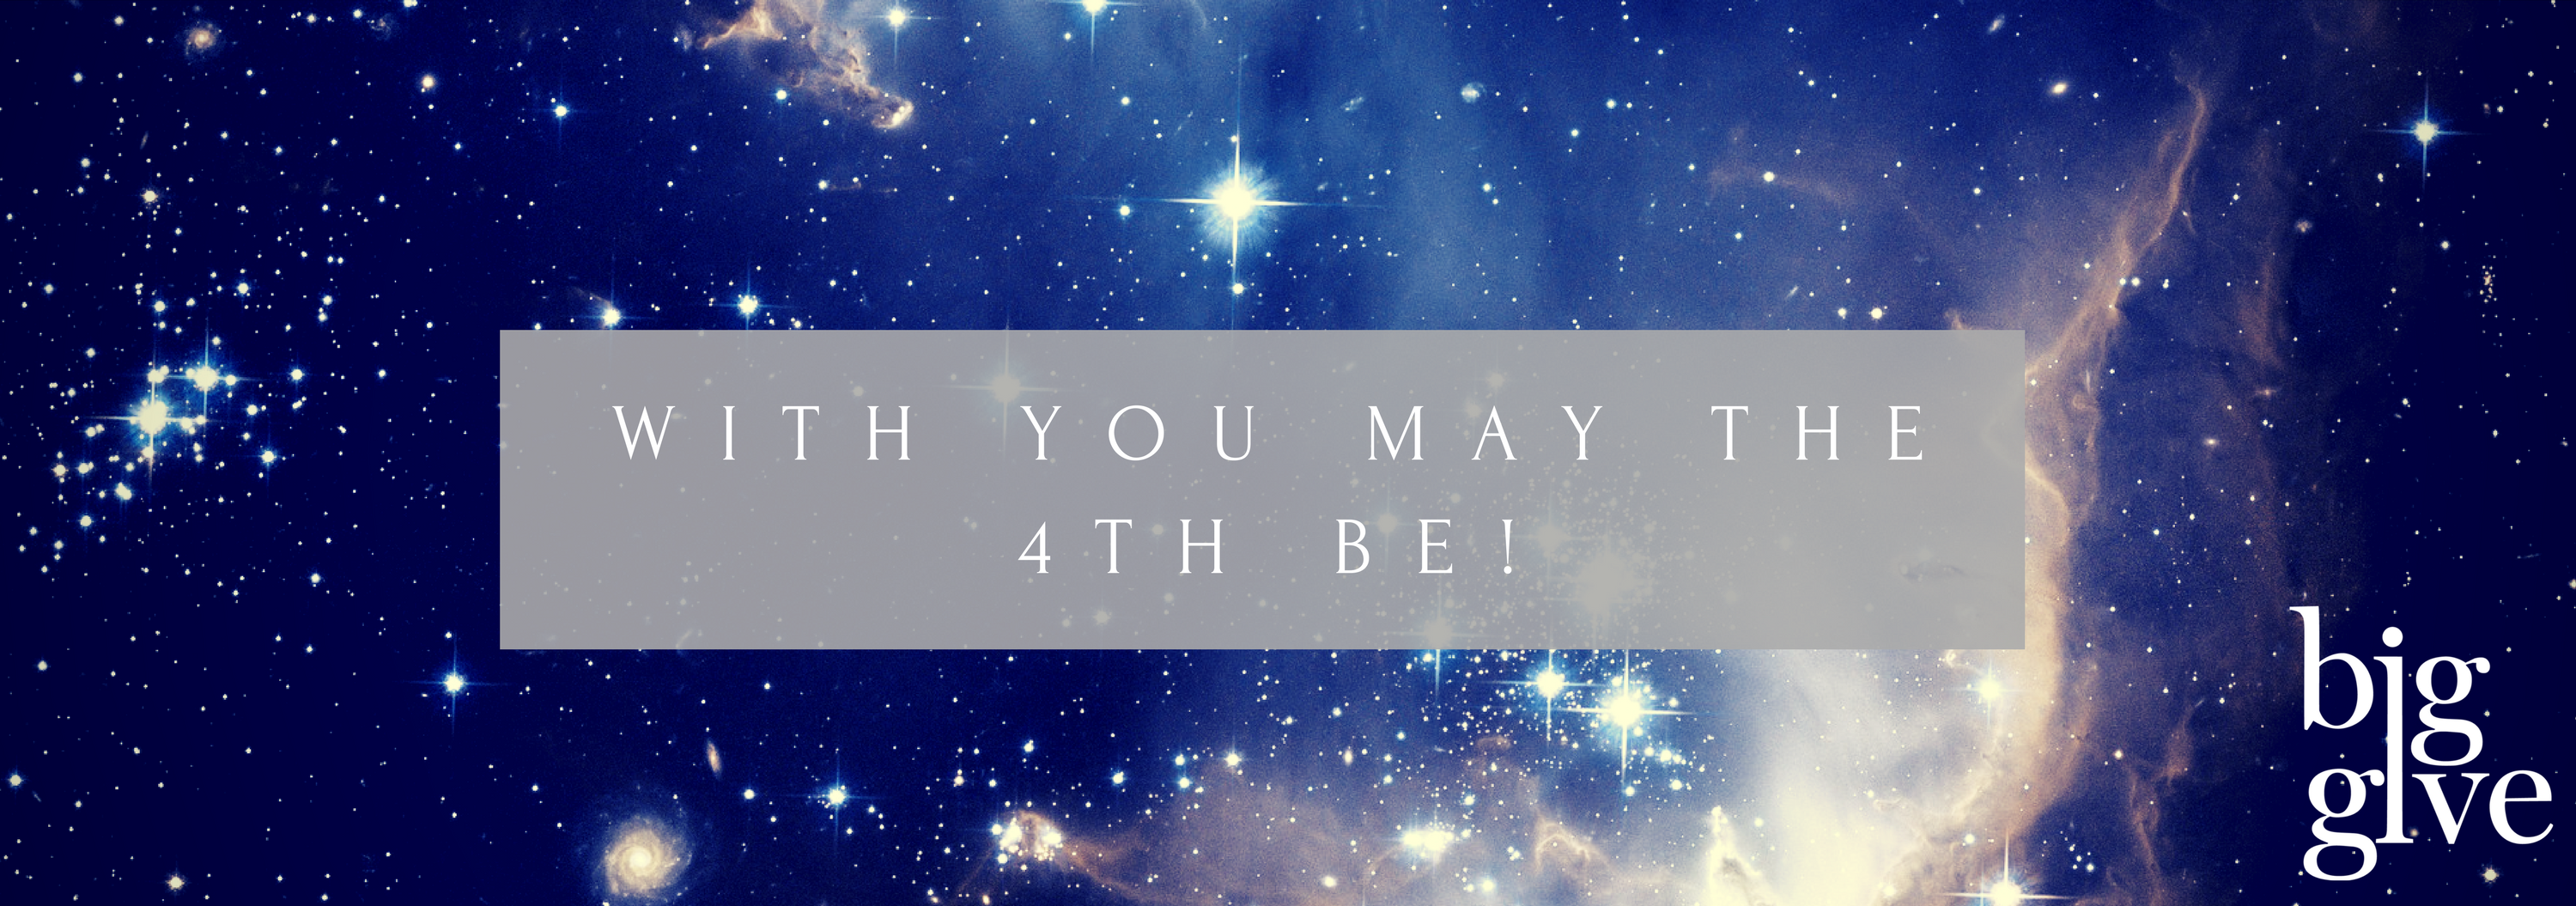 With you may the 4th be! (1)